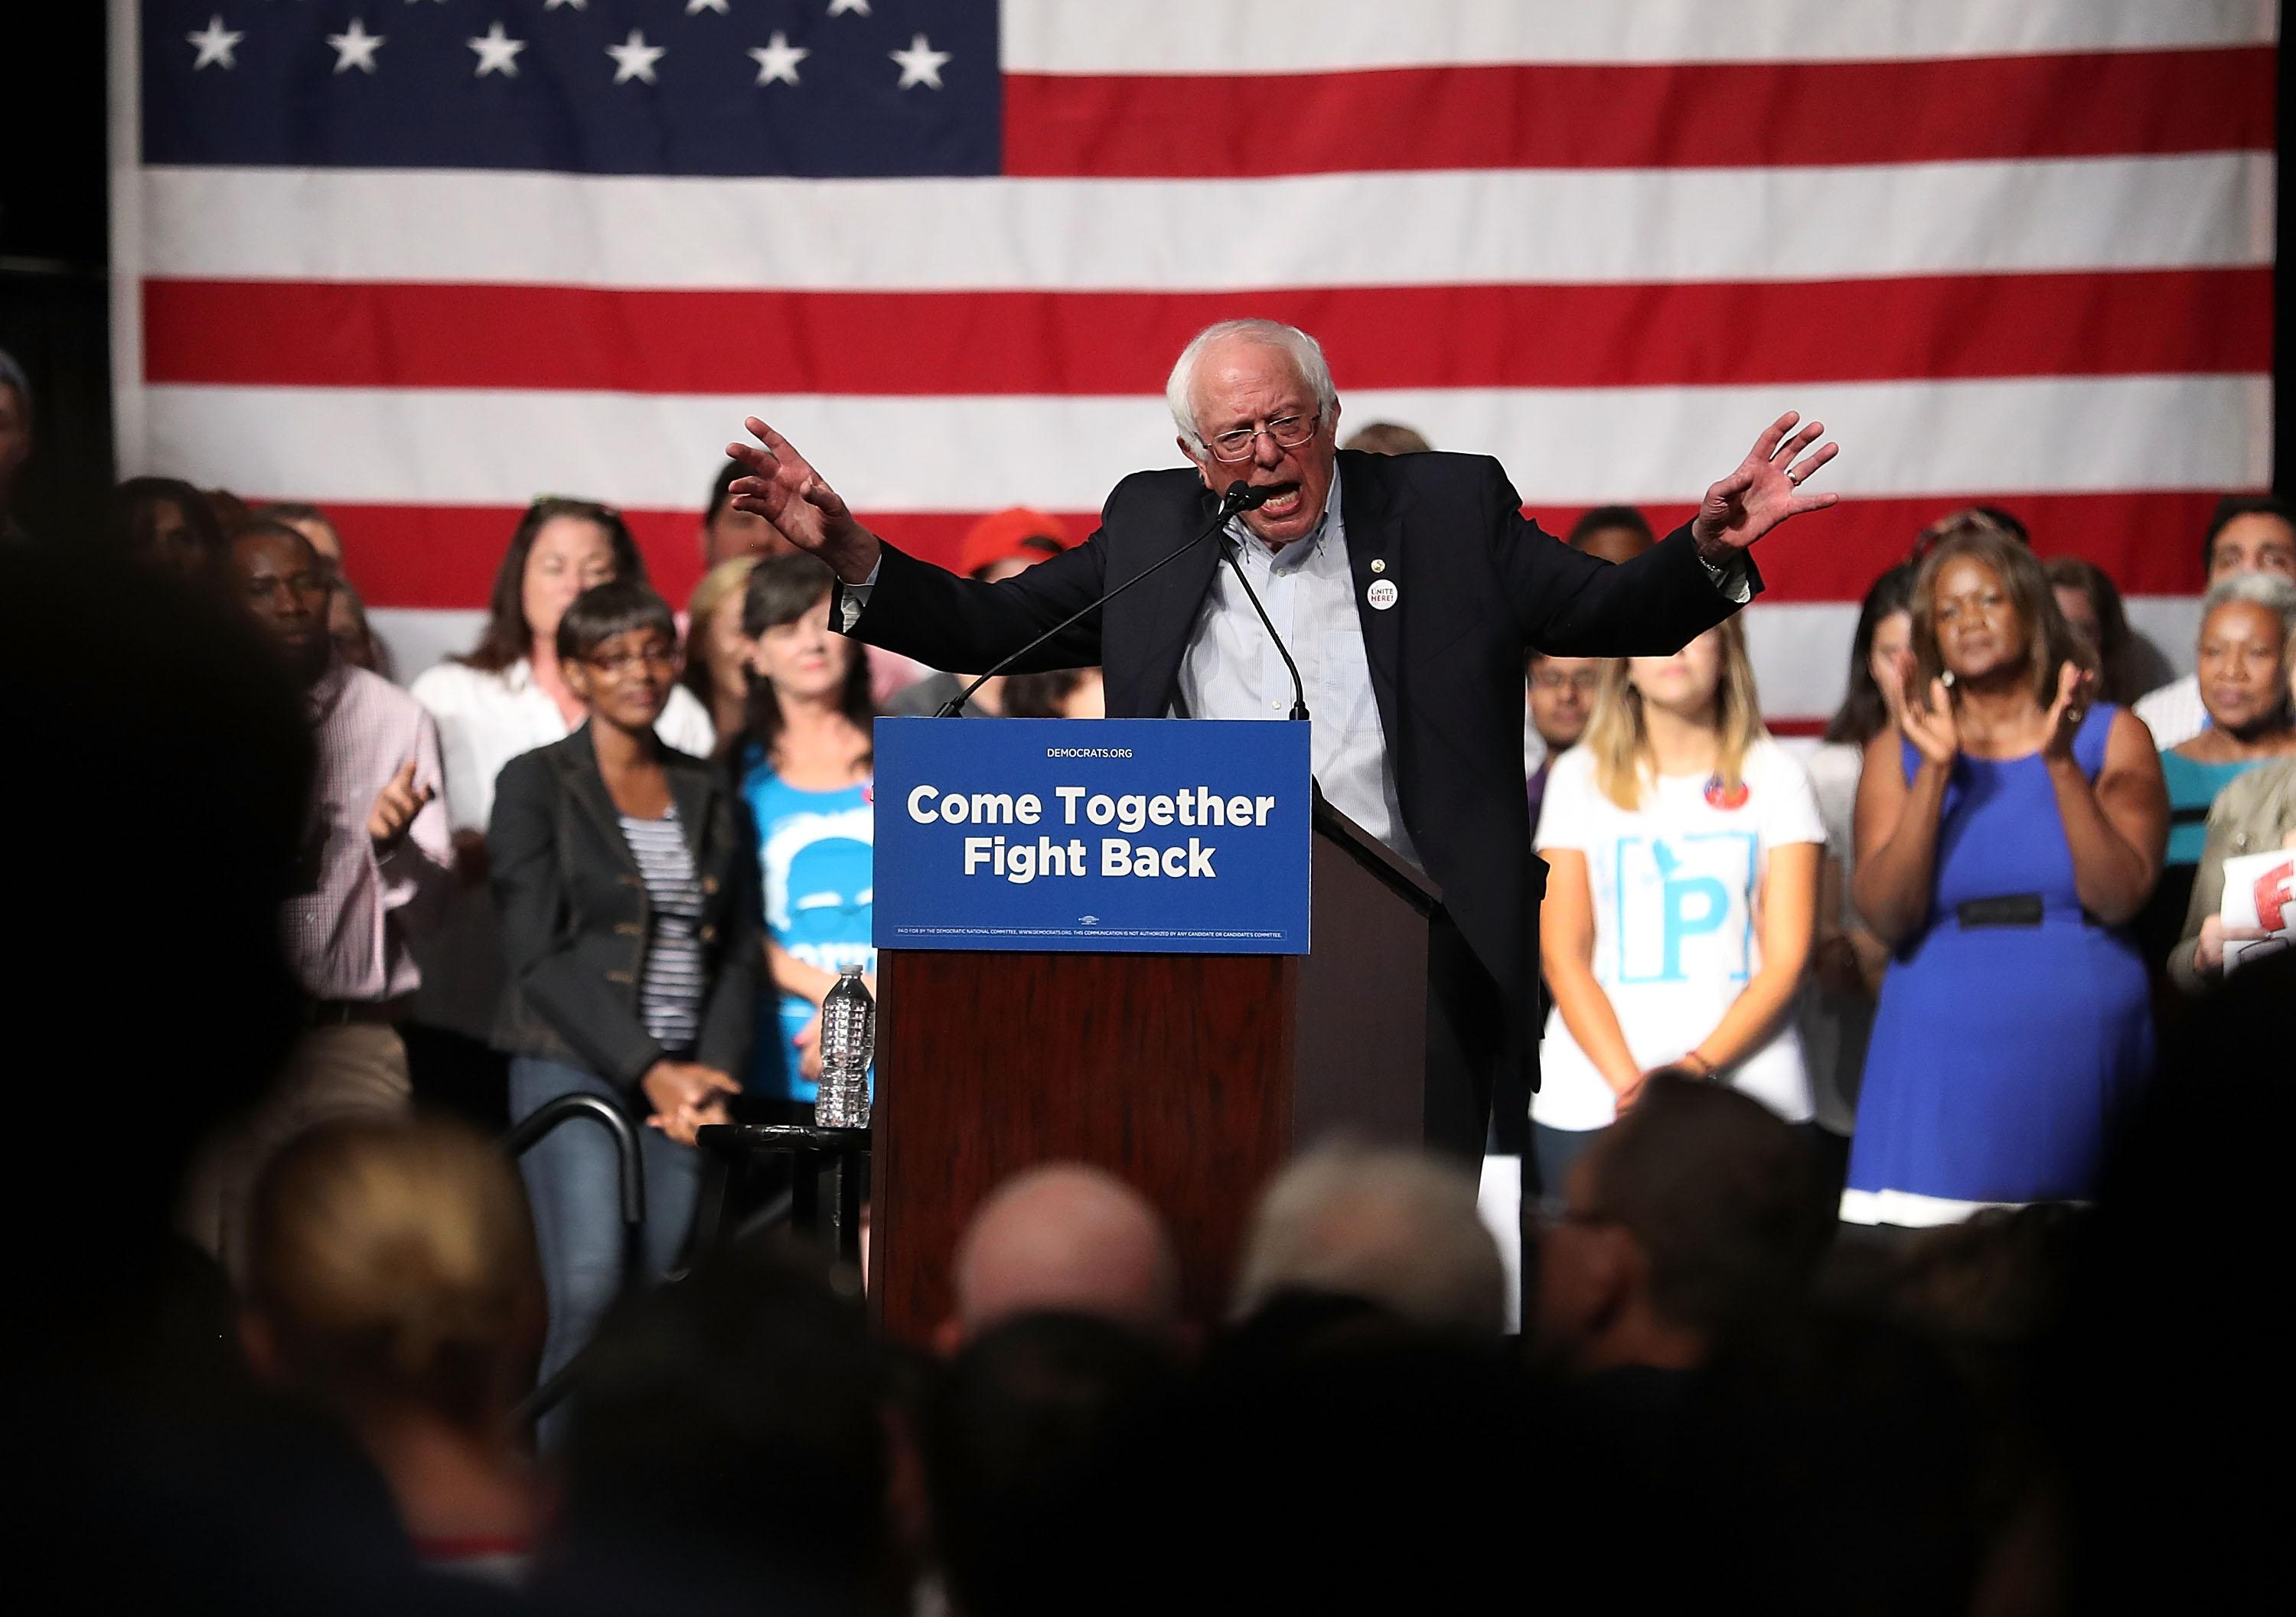 Bernie Sanders opening speech at Women's Convention? Some women aren't thrilled